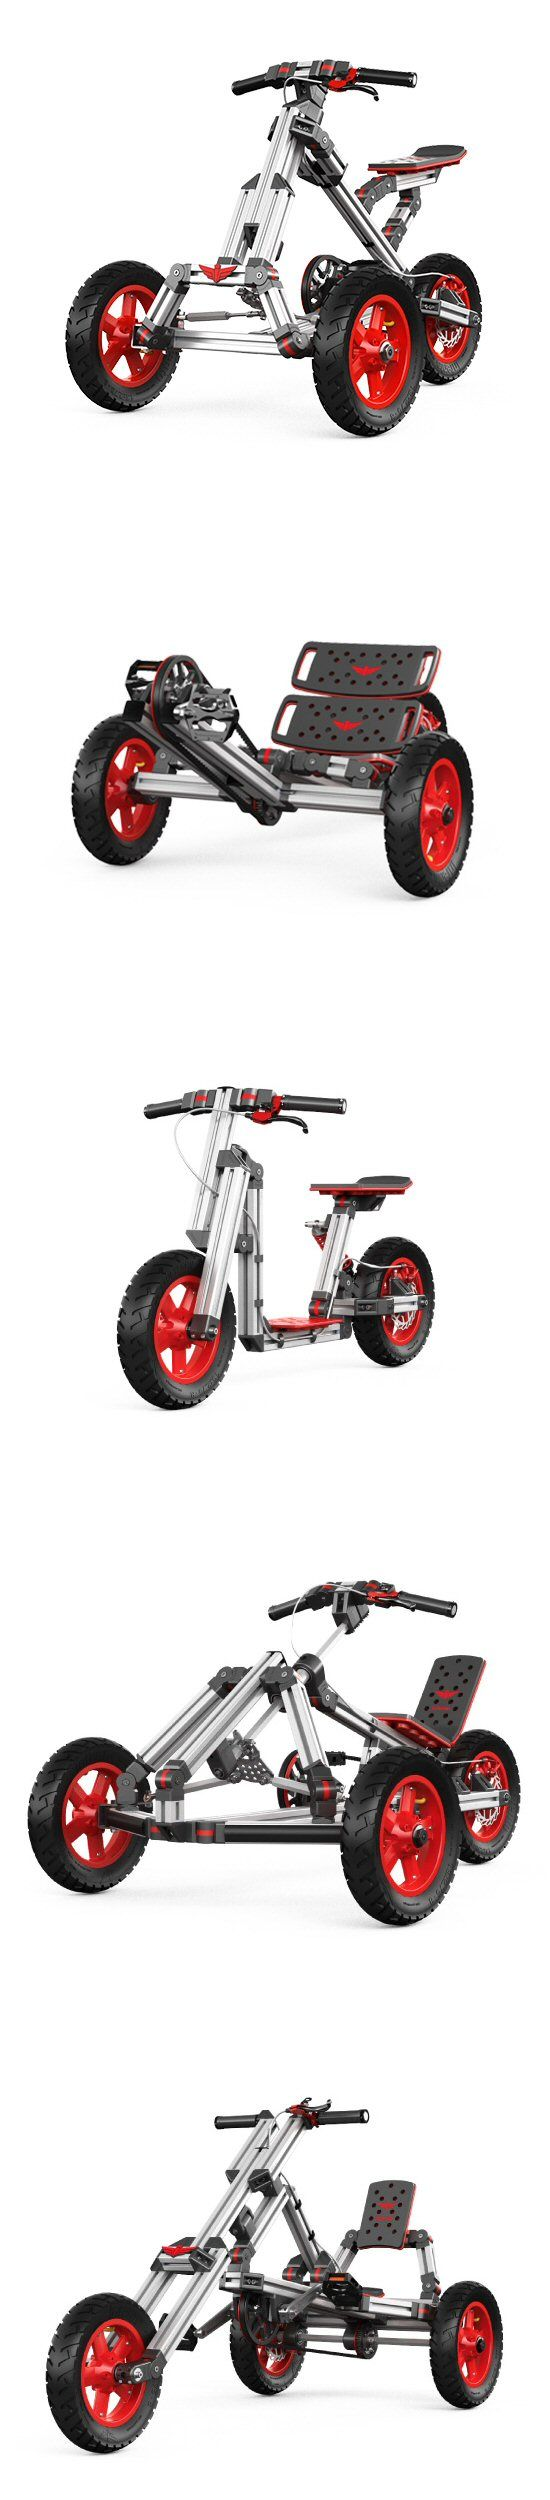 Construible rides (Infento, 2015): a vehicle kit that provides all necessary materials and instructions to build from the ground up, and as a bonus, can be entirely constructed with a single hex key.